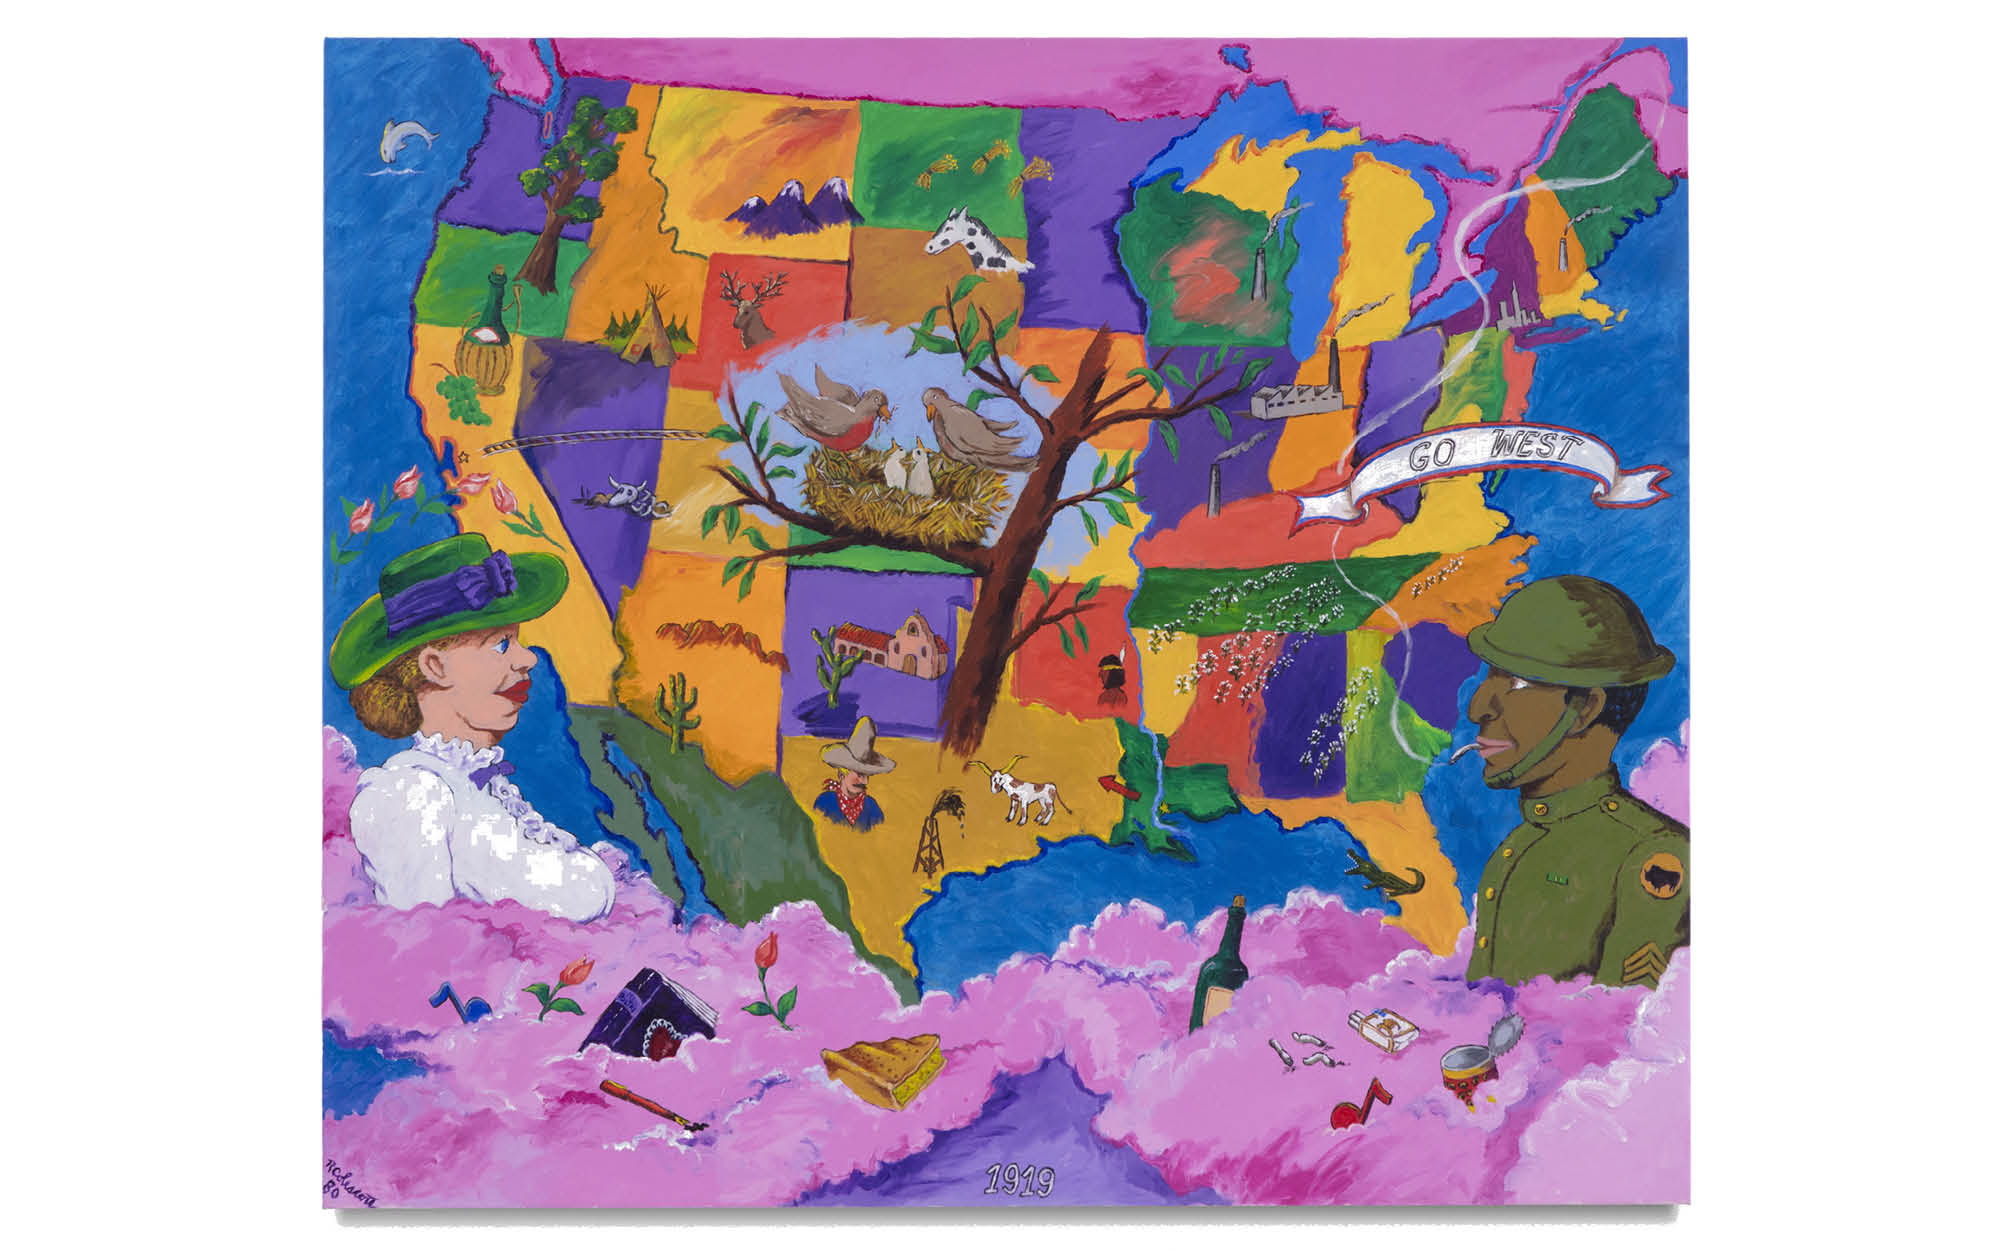 Robert Colescott,1919 (1980), Acrylic on canvas, 71 3/4 x 83 7/8 inches © 2021 Estate of Robert Colescott / Artists Rights Society (ARS), New York. Courtesy of the Estate and Blum & Poe, Los Angeles/New York/Tokyo Photo Credit: Joshua White